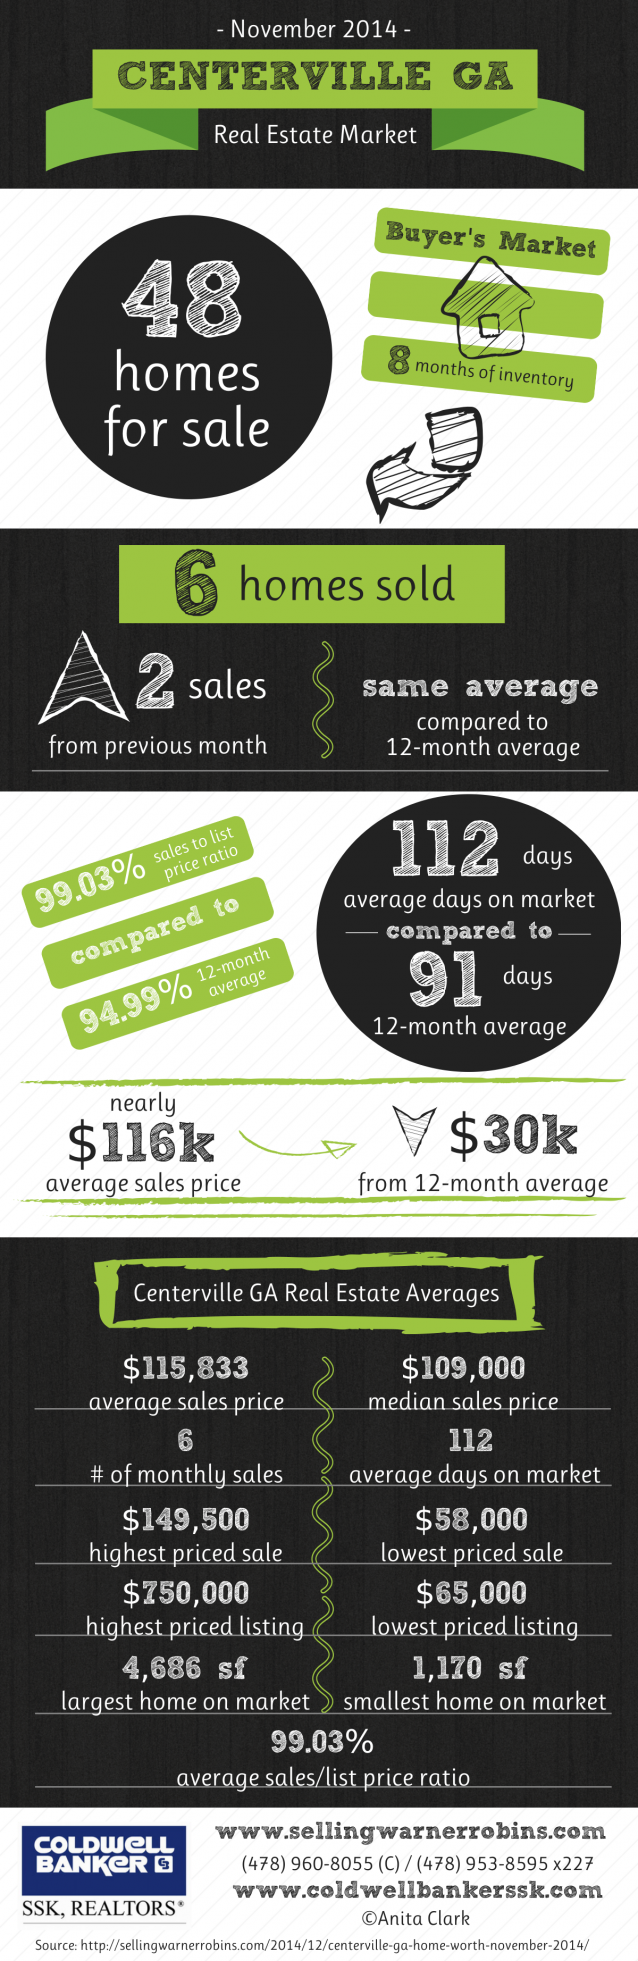 Real Estate Market in Centerville GA in November 2014